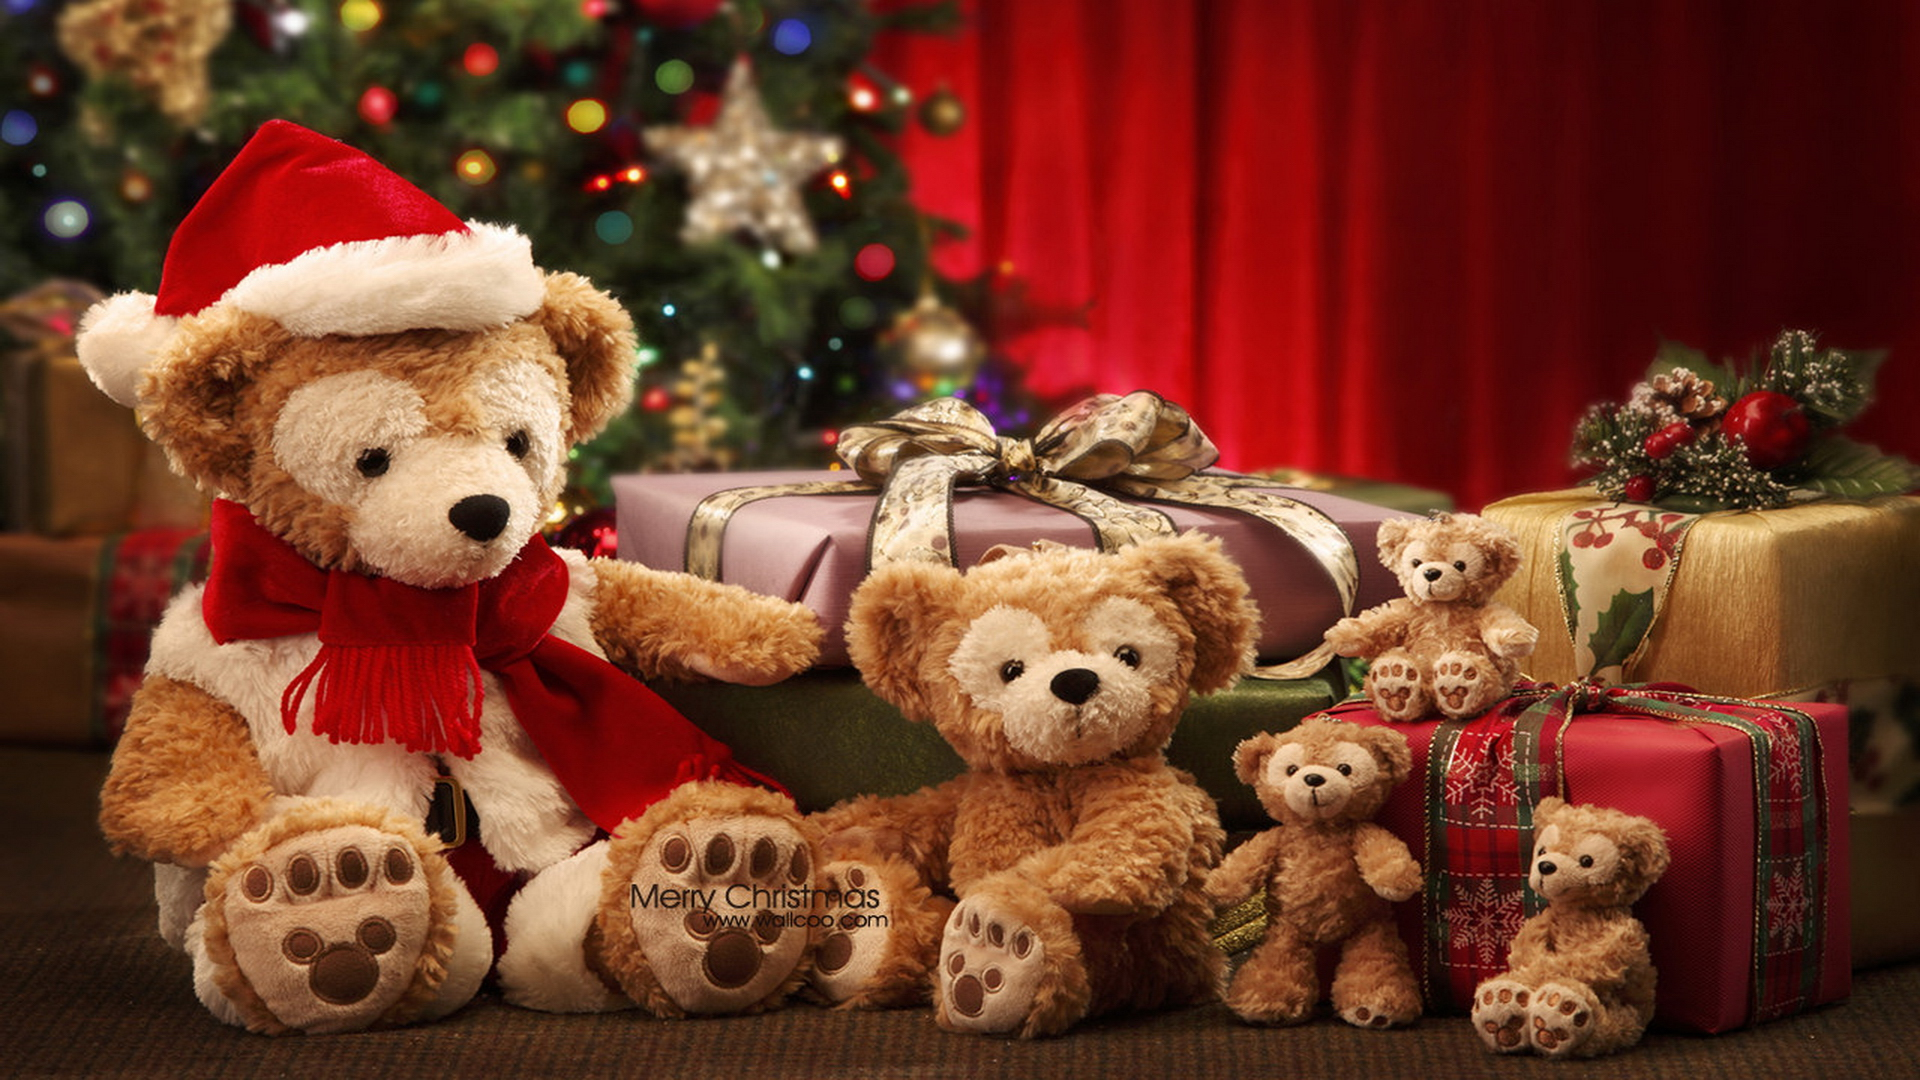 40 Cute Merry Christmas Wallpapers To Download For Free